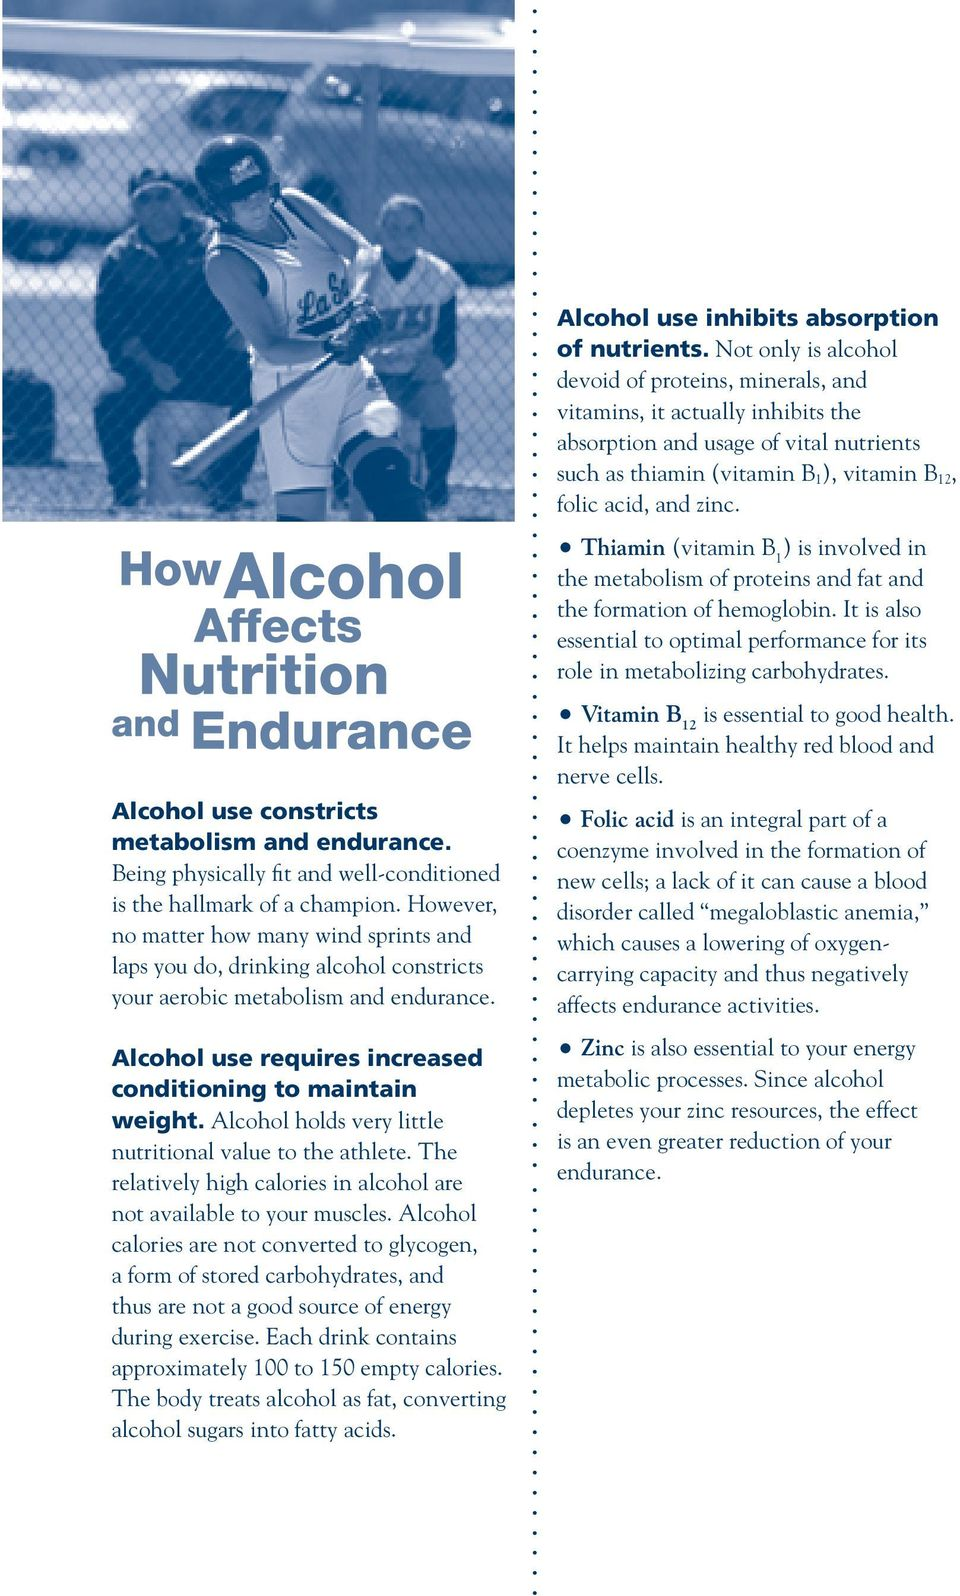 Alcohol holds very little nutritional value to the athlete. The relatively high calories in alcohol are not available to your muscles.